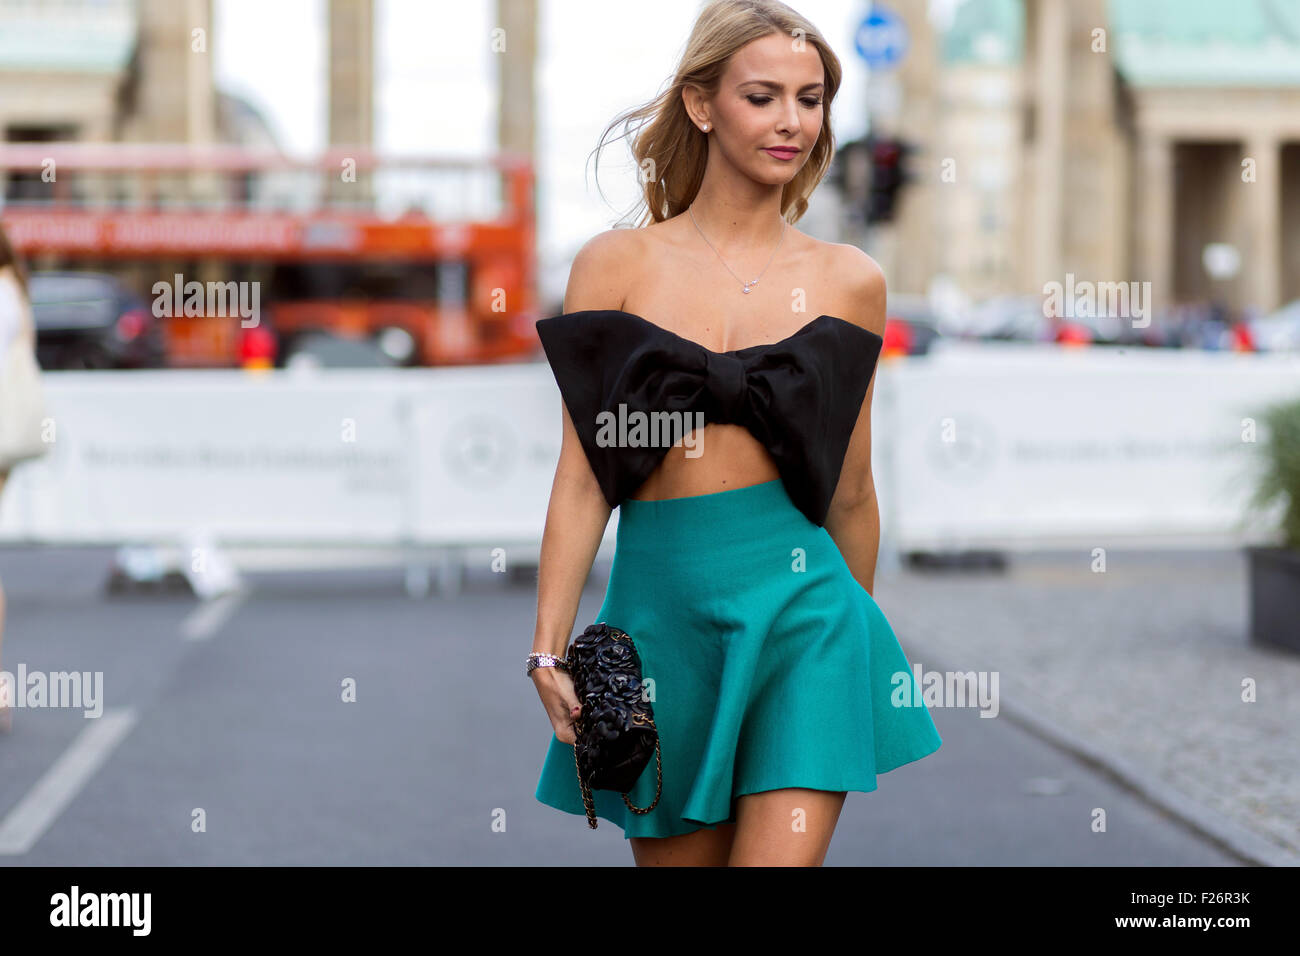 mercedes benz fashion week berlin spring summer 2016 streetstyle stock photo royalty free. Black Bedroom Furniture Sets. Home Design Ideas